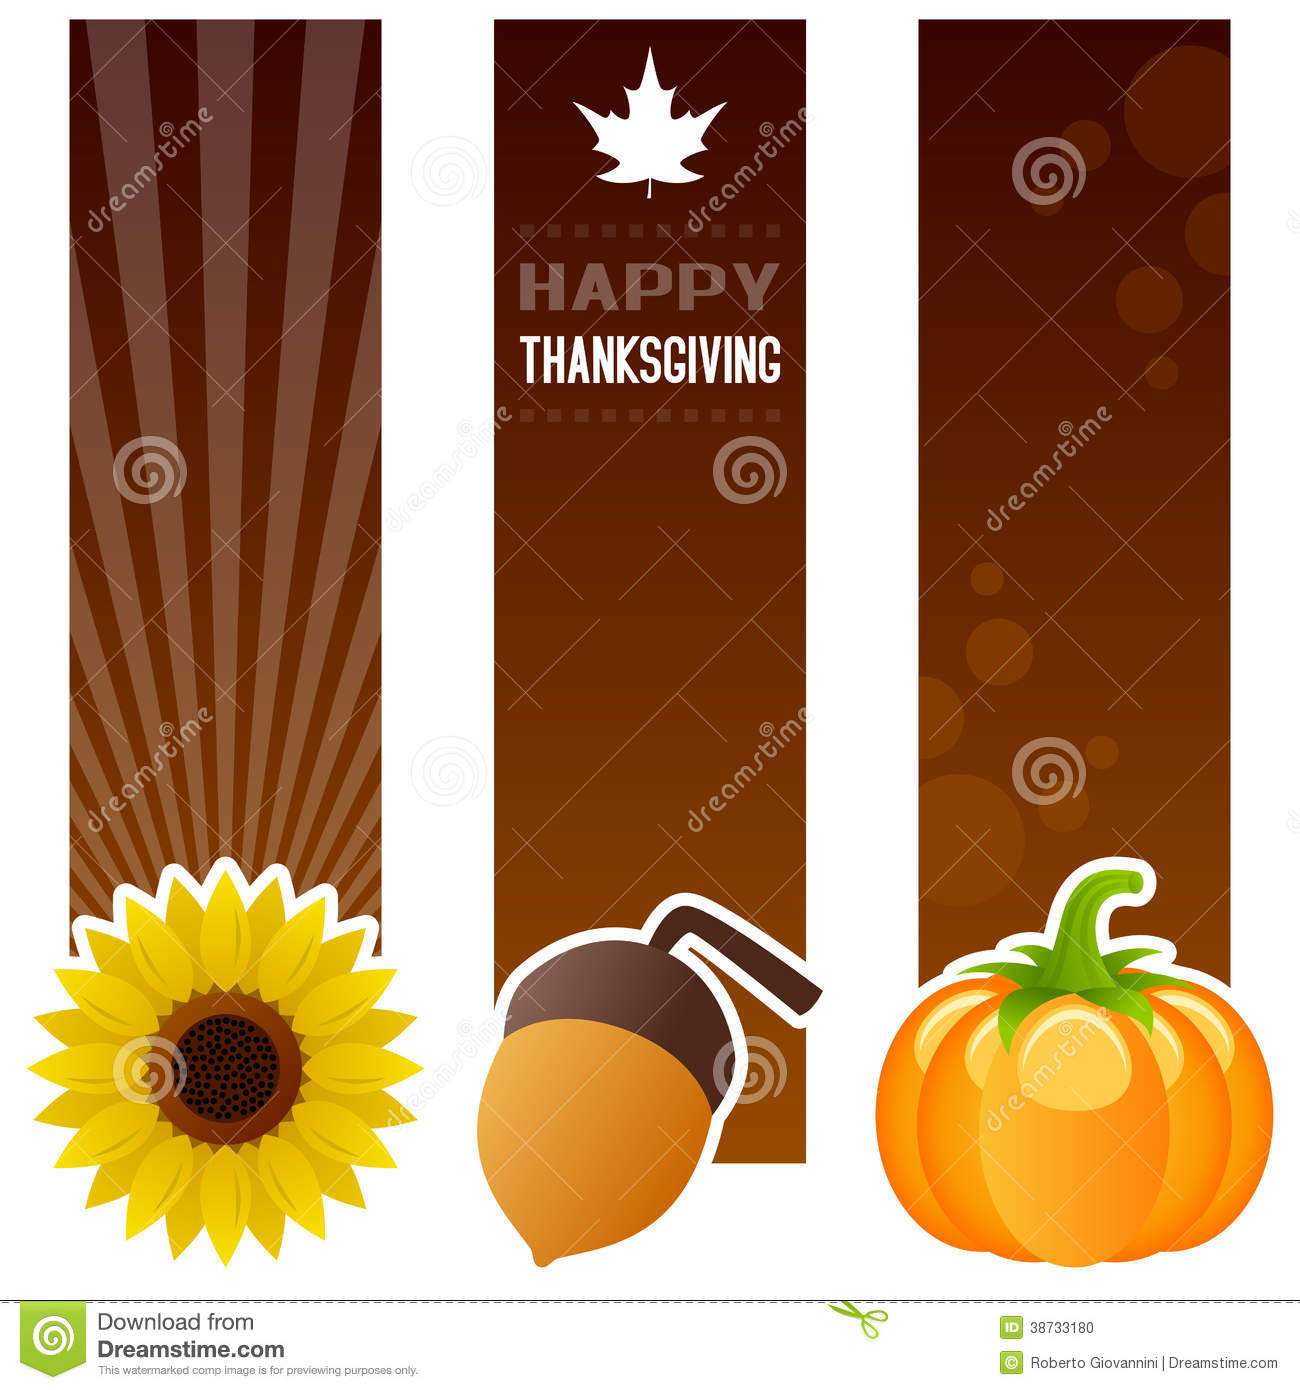 Thanksgiving Day Vertical Banners Stock Photo - Image: 38733180